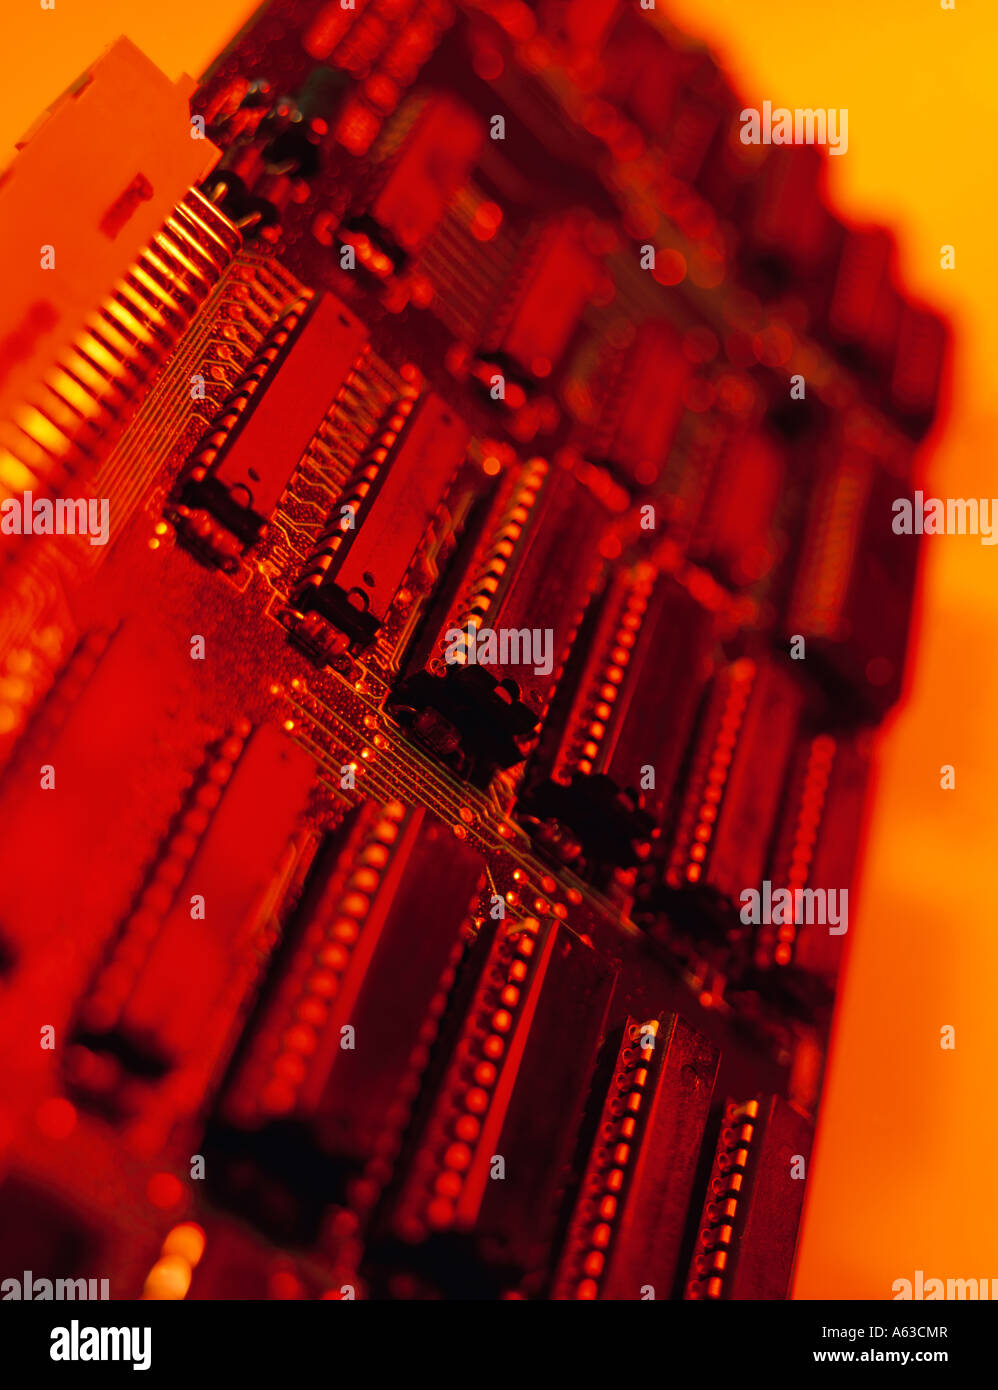 COMPUTER MEMORY CHIPS ON PRINTED CIRCUIT BOARD - Stock Image